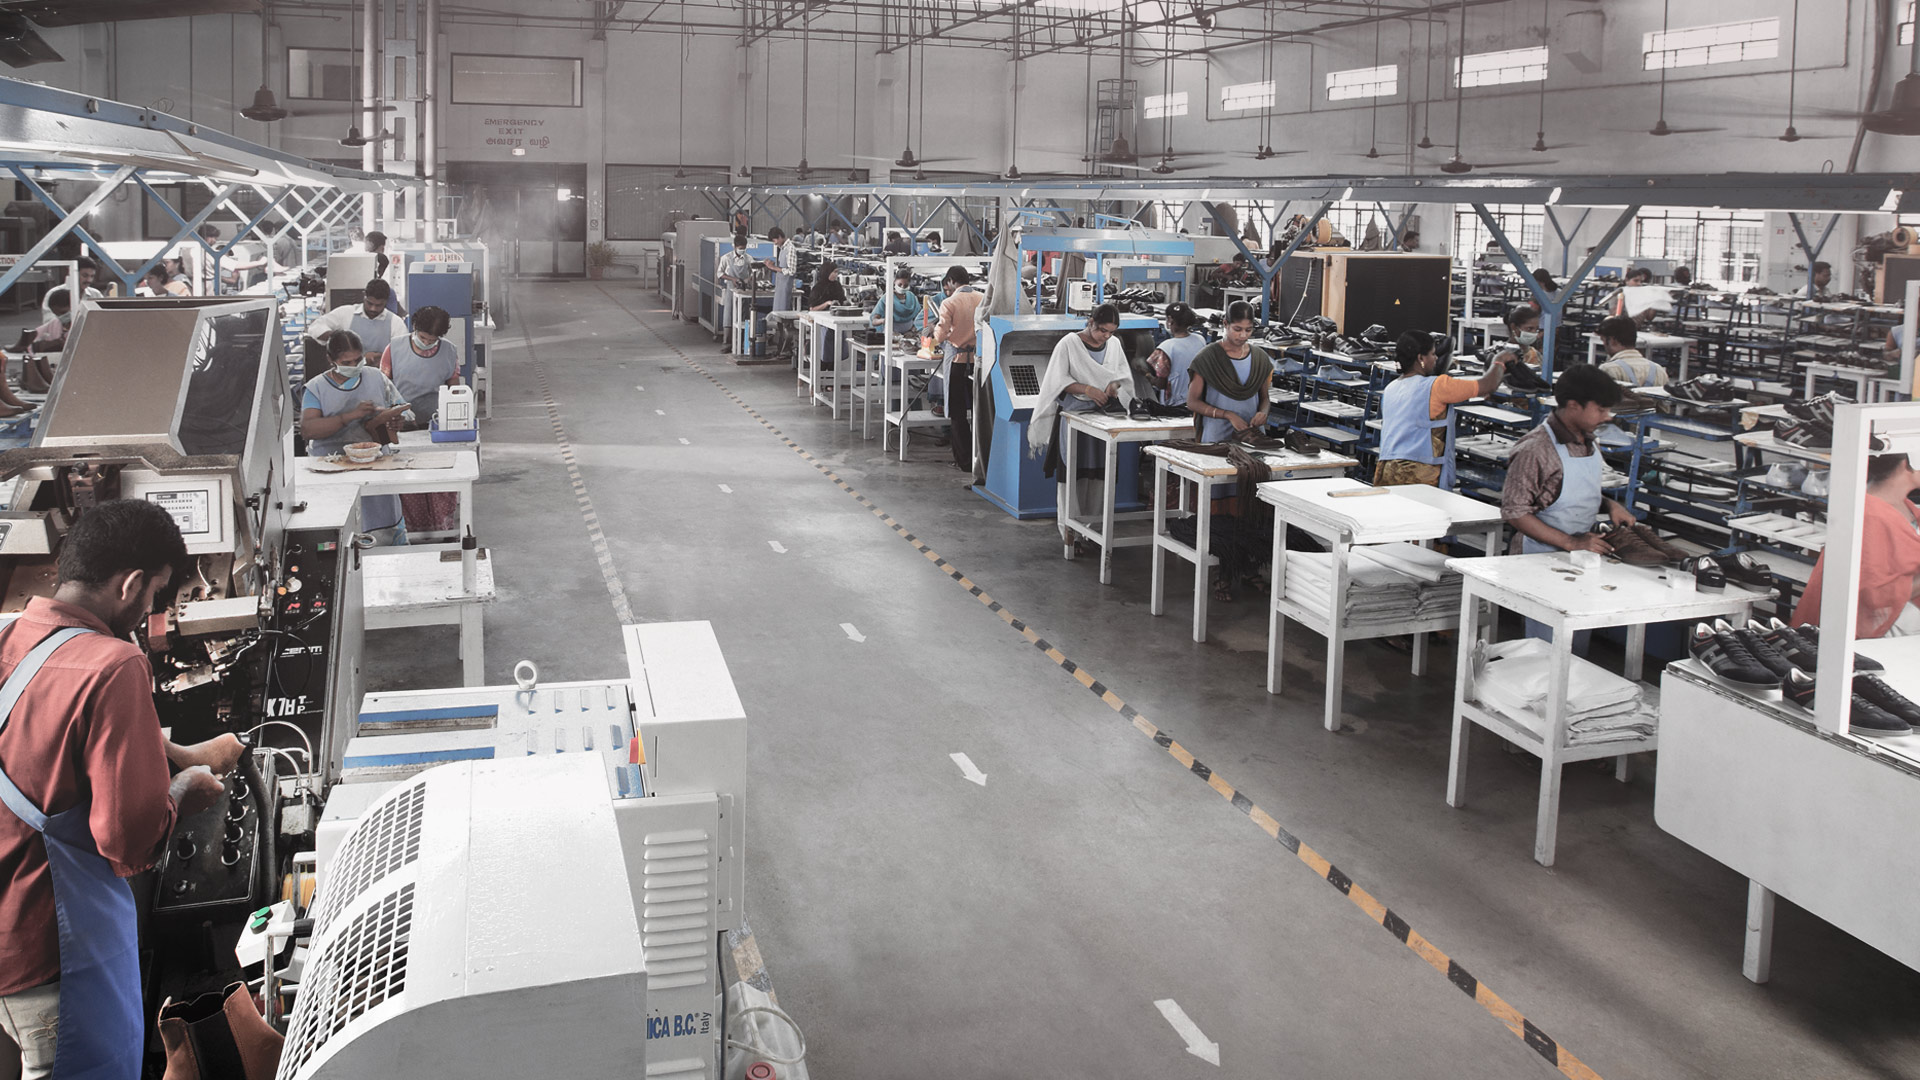 fashion shoes for men and women are produced and exported from our full-shoe division